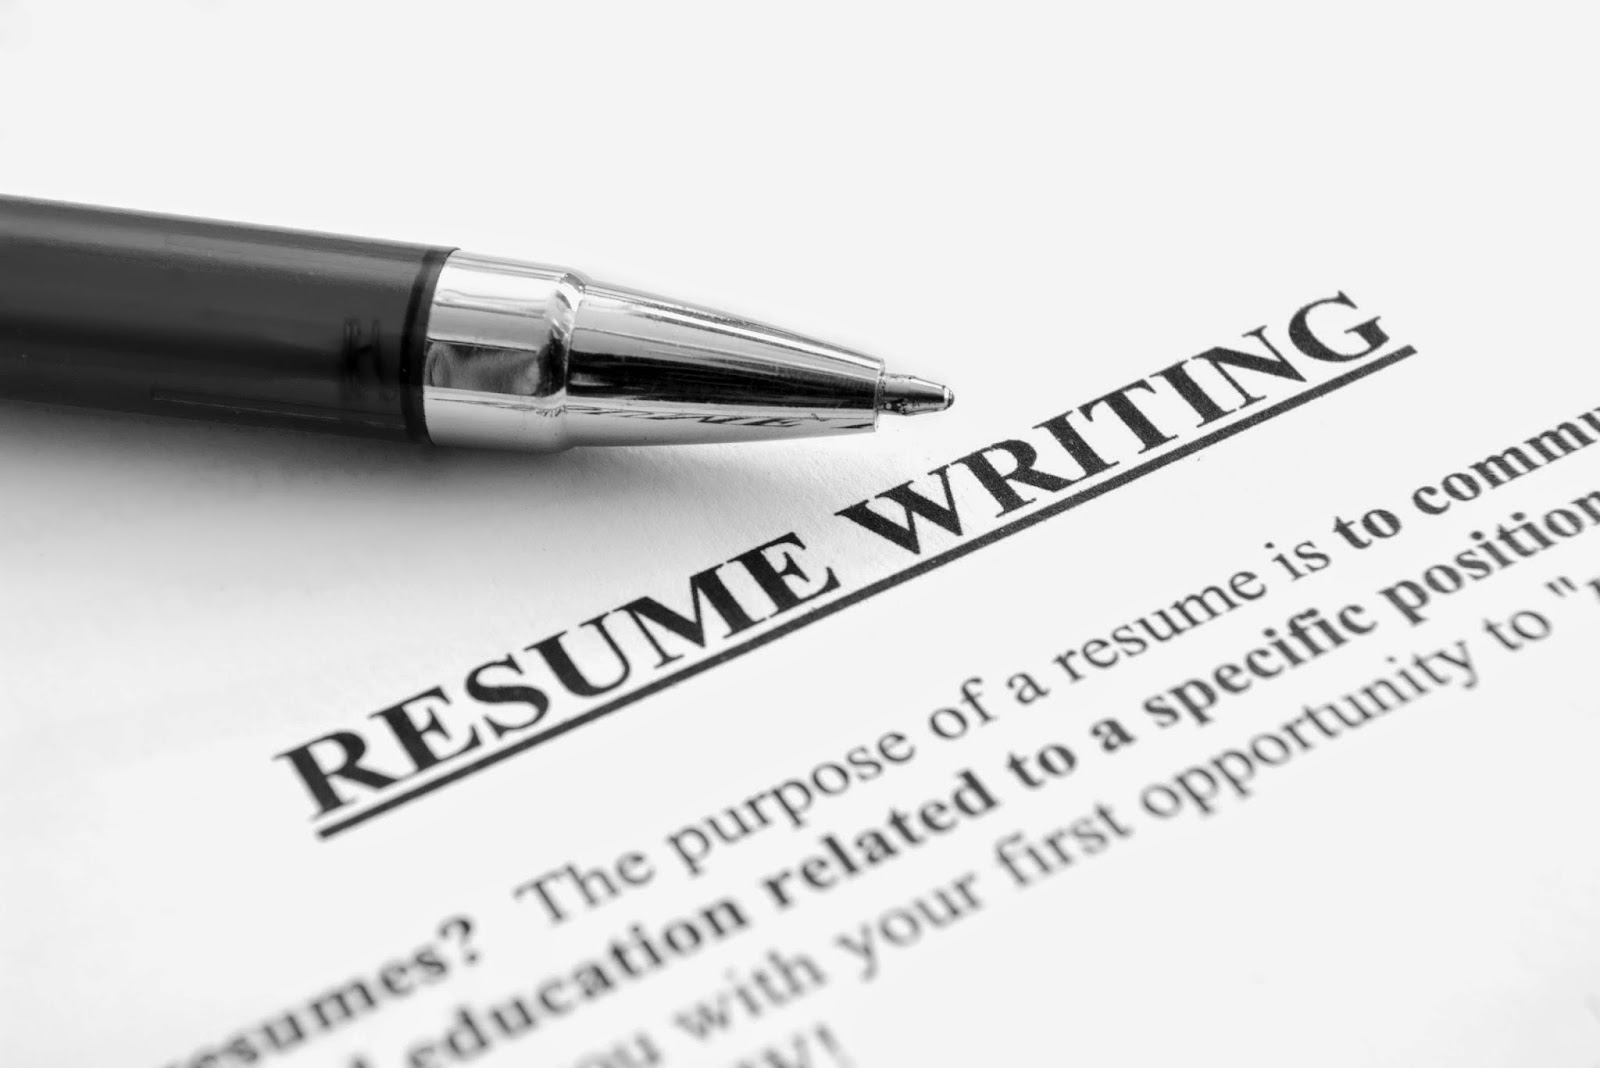 fix my resume services sample customer service resume fix my resume services myperfectresume resume builder help write a resumes template help resume